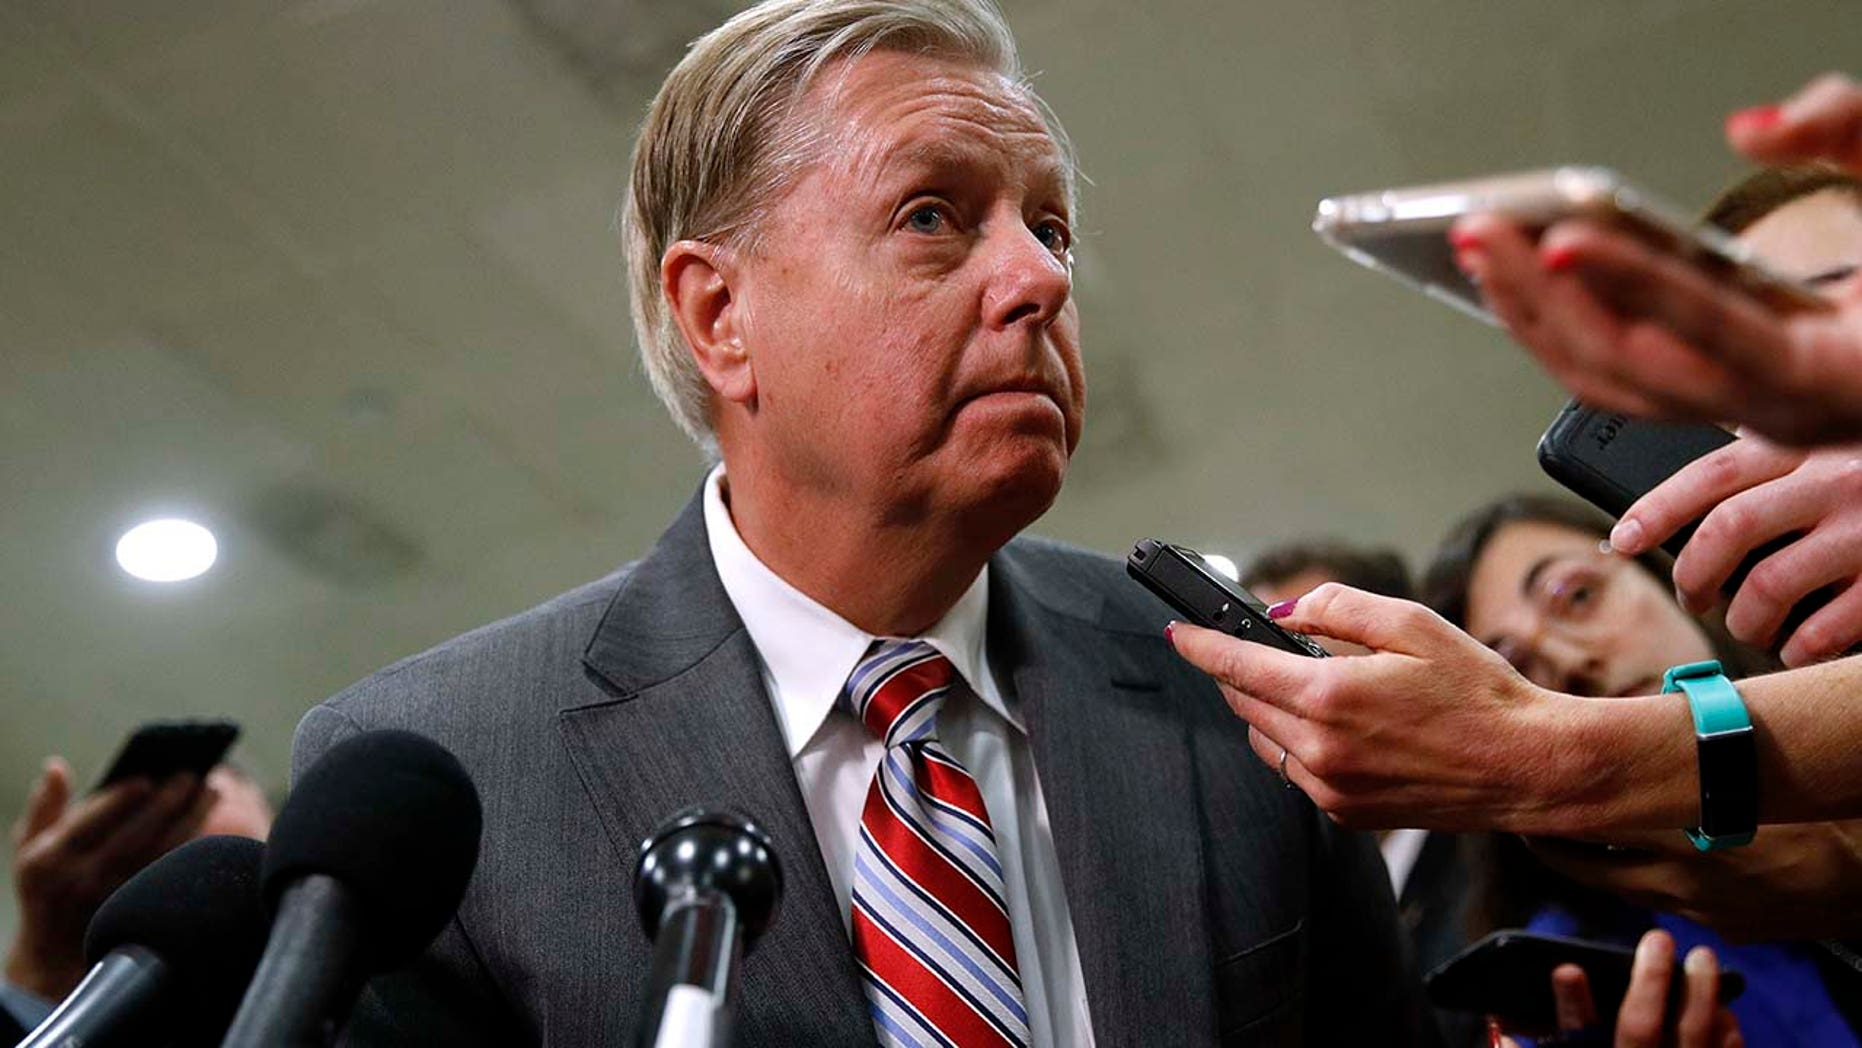 Sen. Lindsey Graham, R-S.C., speaks to reporters after a classified members-only briefing on Iran, Tuesday, May 21, 2019, on Capitol Hill in Washington. (AP Photo/Patrick Semansky)